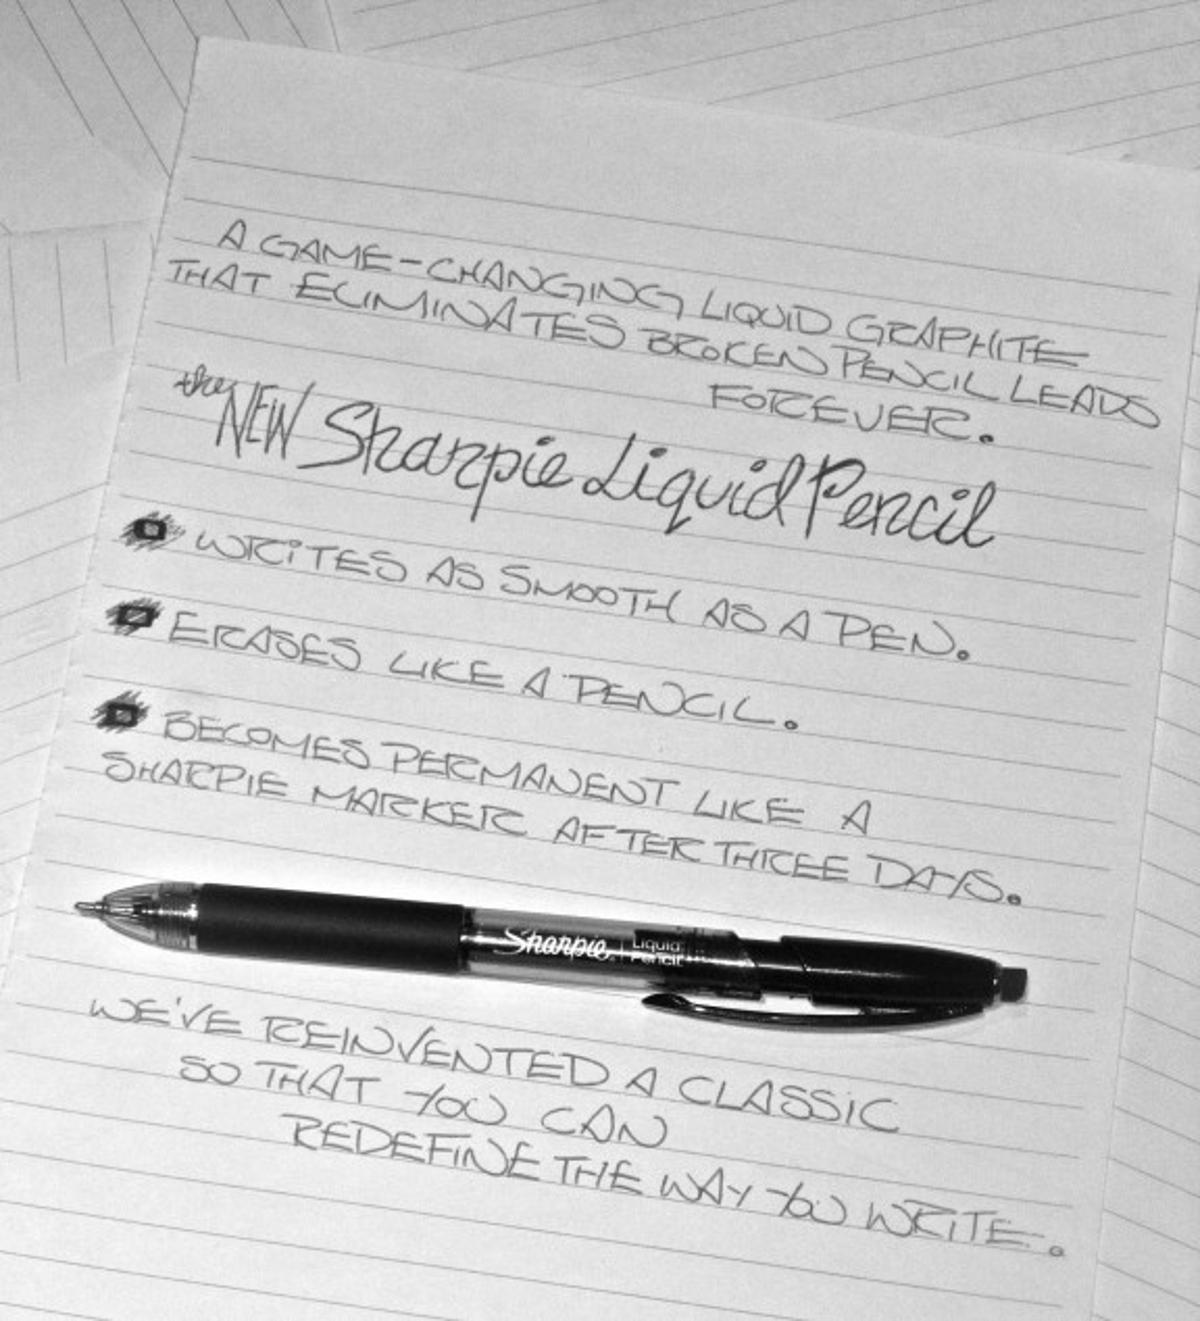 If your second thoughts are better than your first, the Sharpie Liquid Pencil is the writing implement for you